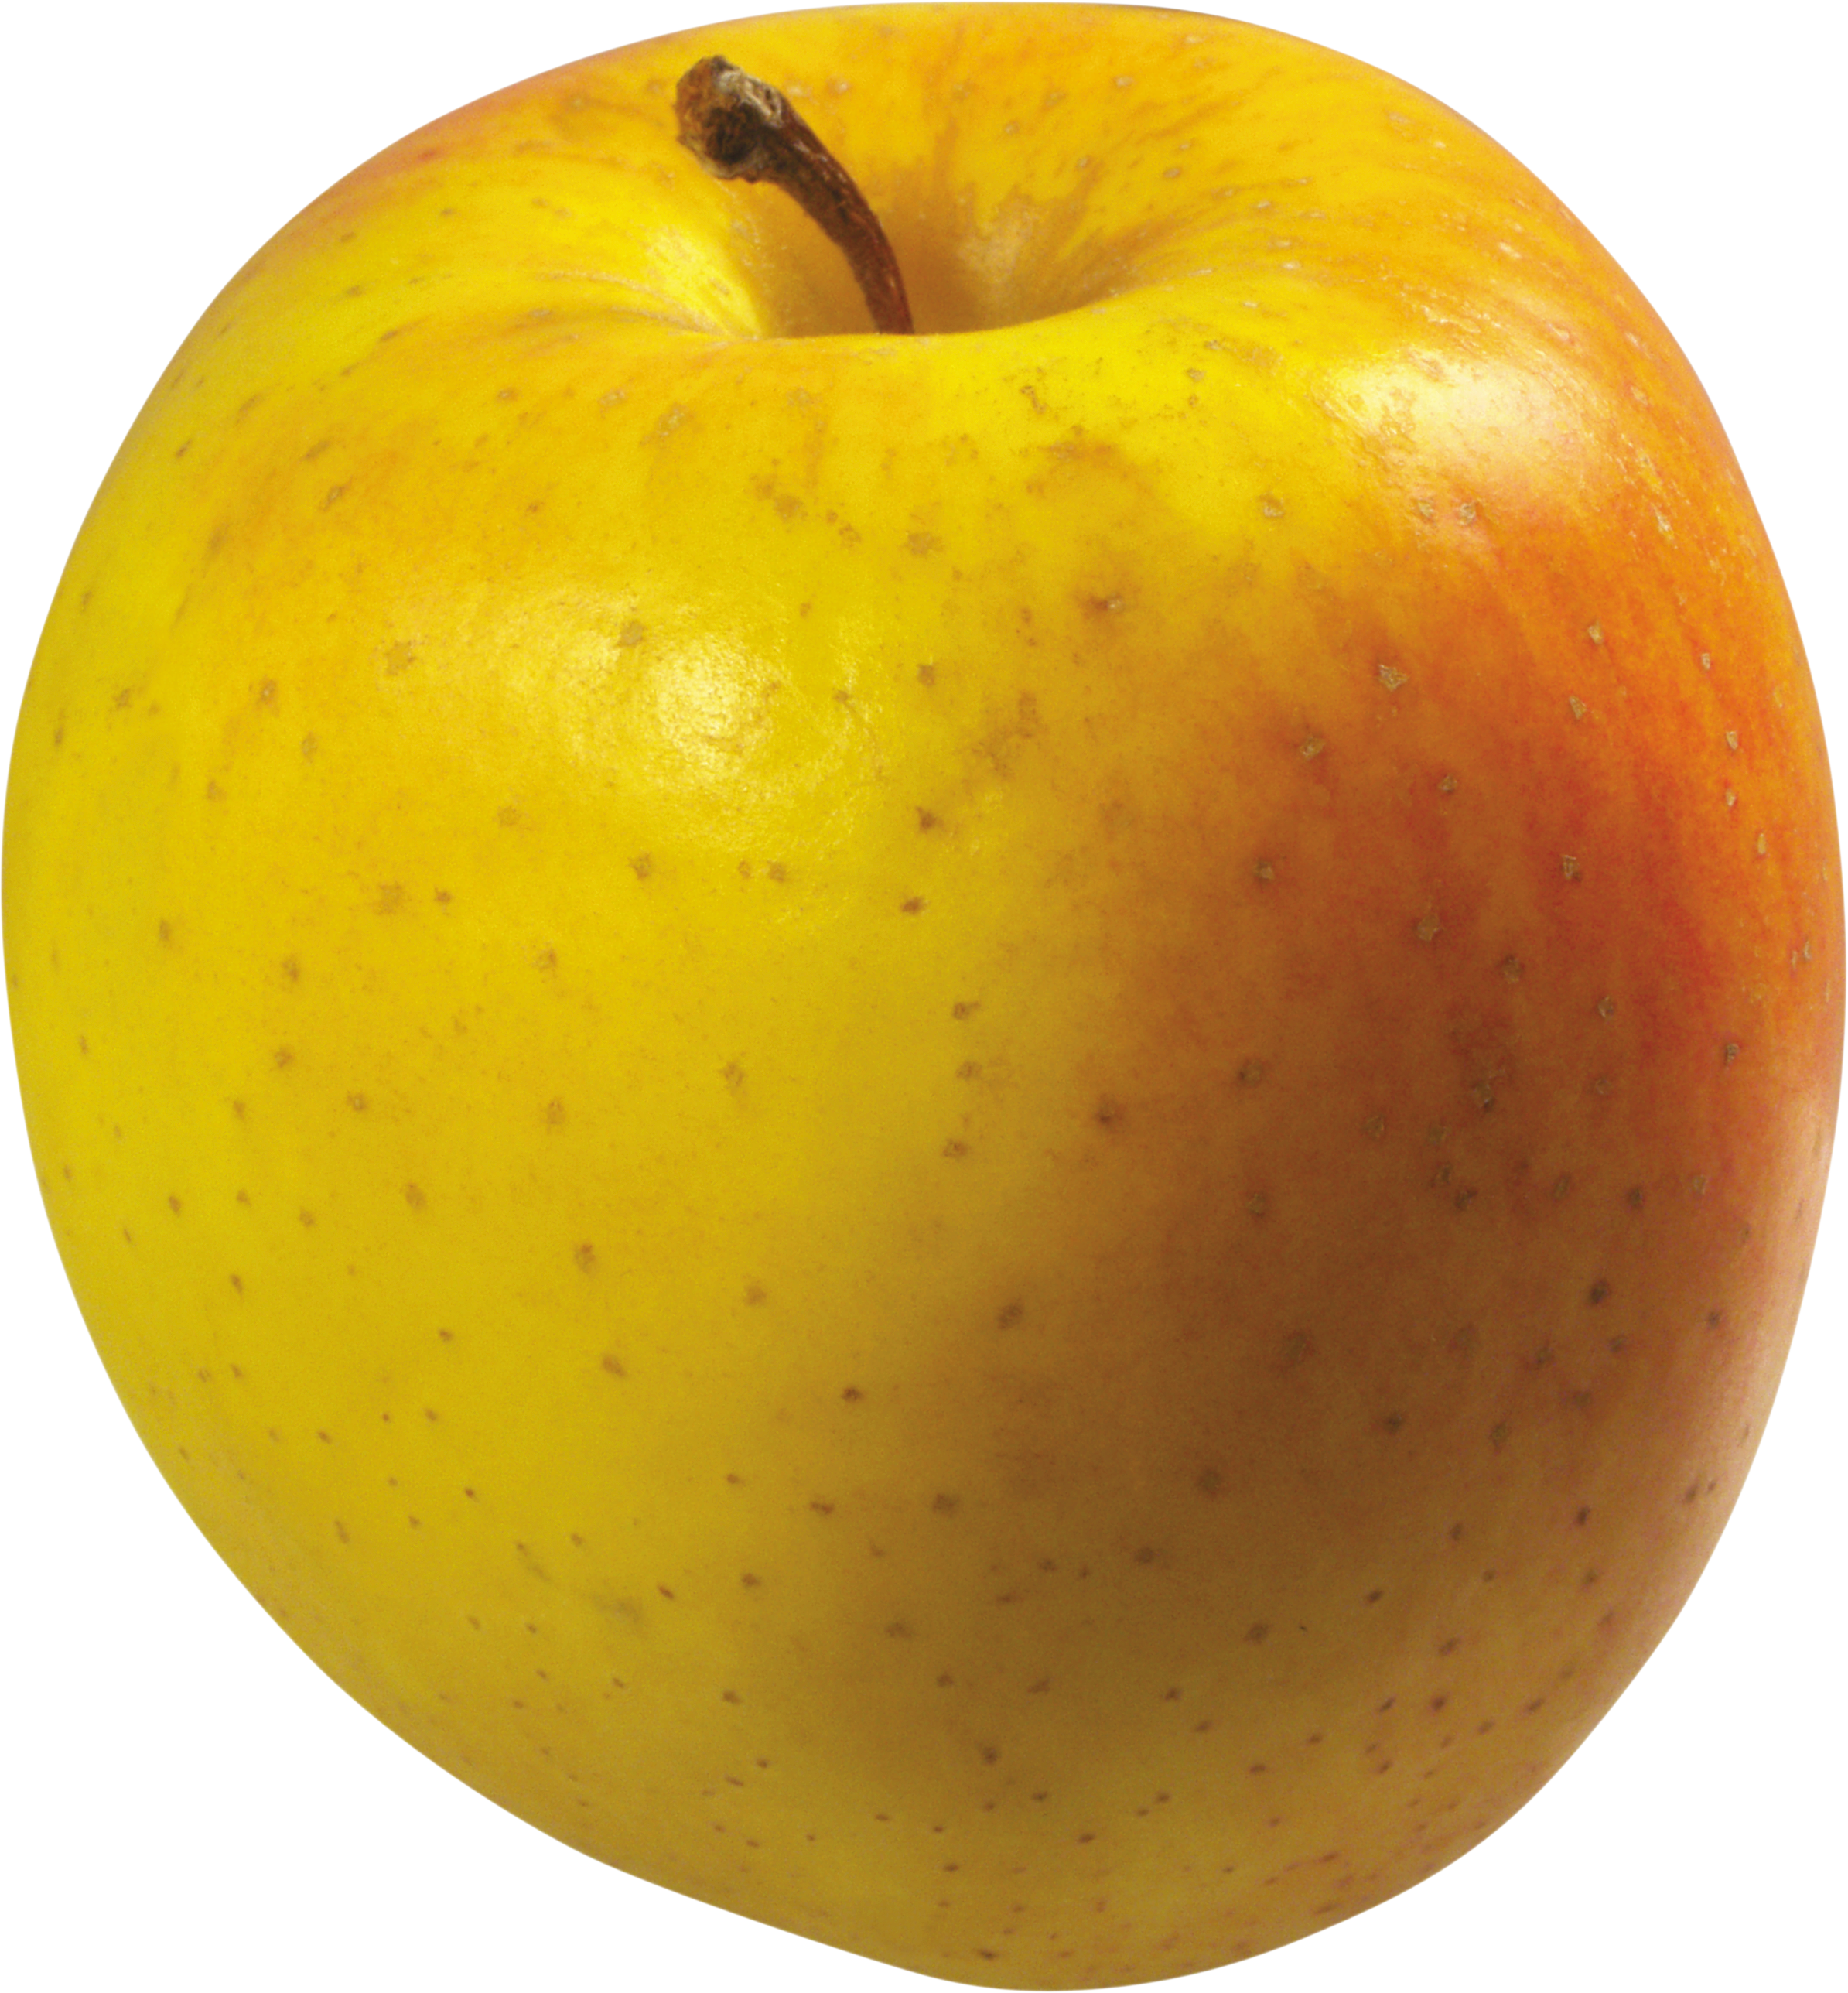 Golden apples png. Yellow apple s image